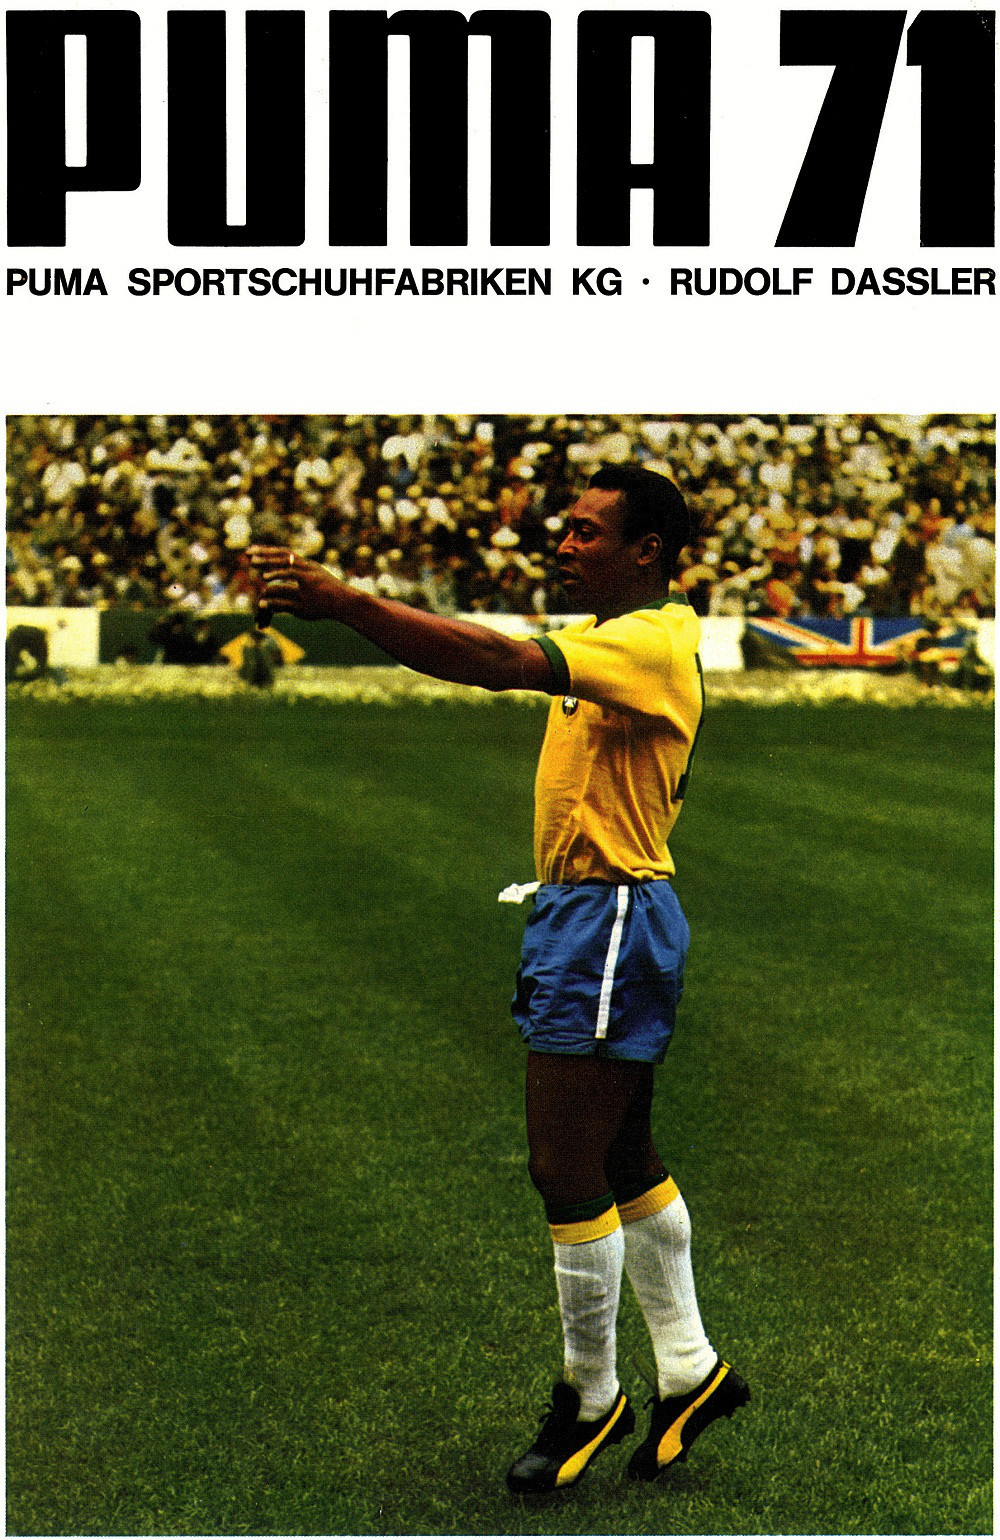 1971 Advertisement poster by Puma featuring Pele during the 1970 World Cup. Source: Puma